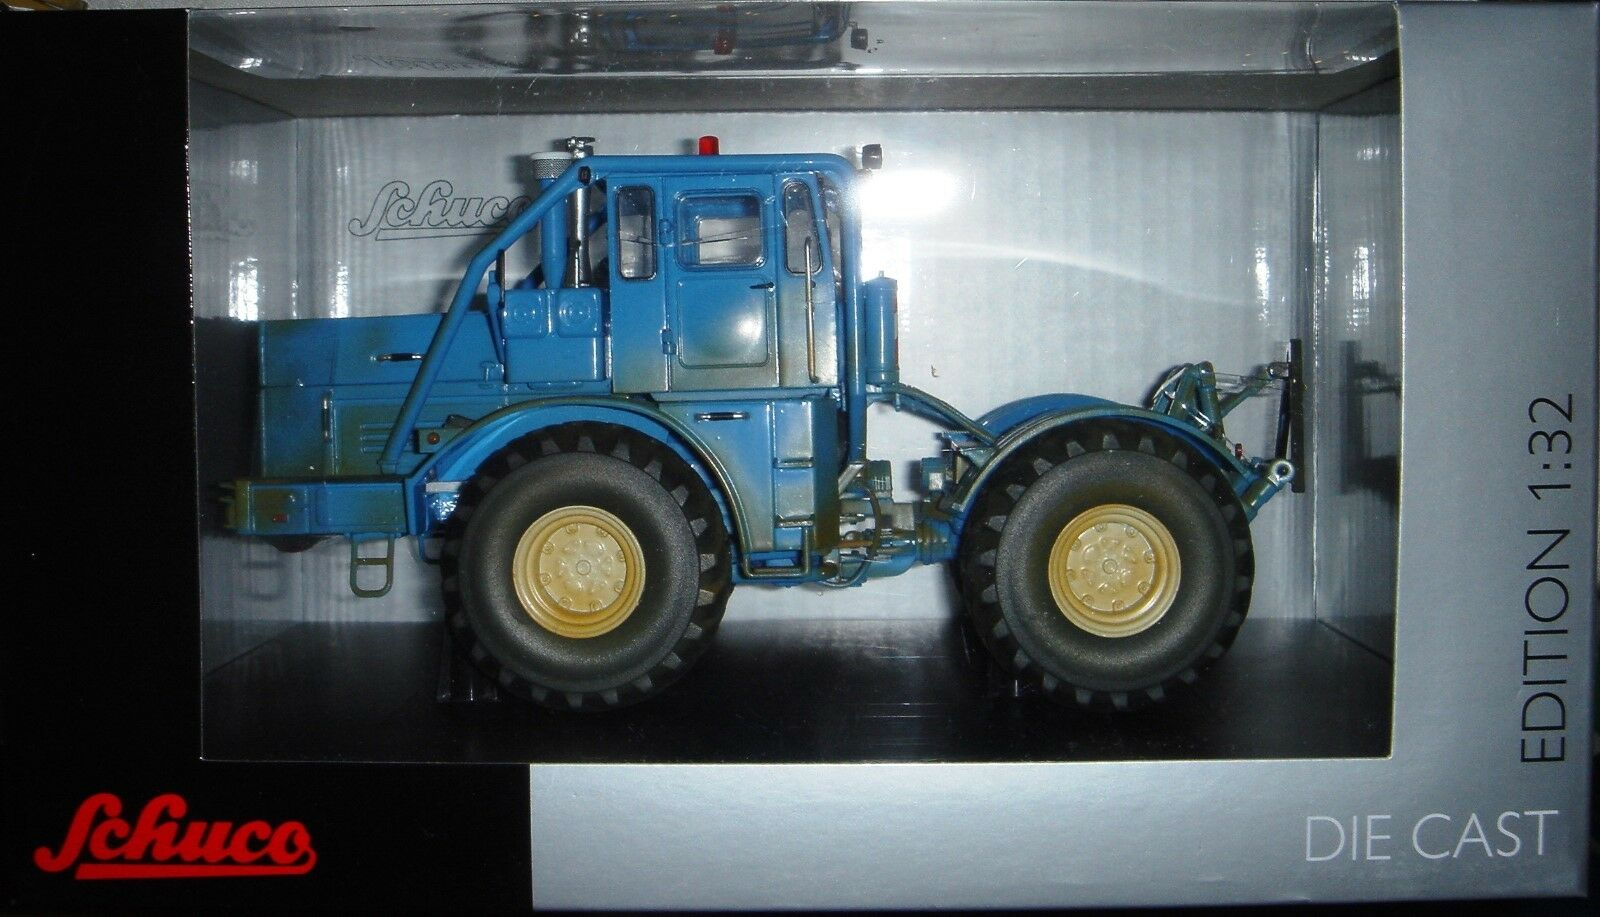 Agritechnica Special Model Kirovets k-700 an in bluee Dirty, Schuco 1 32 Farm